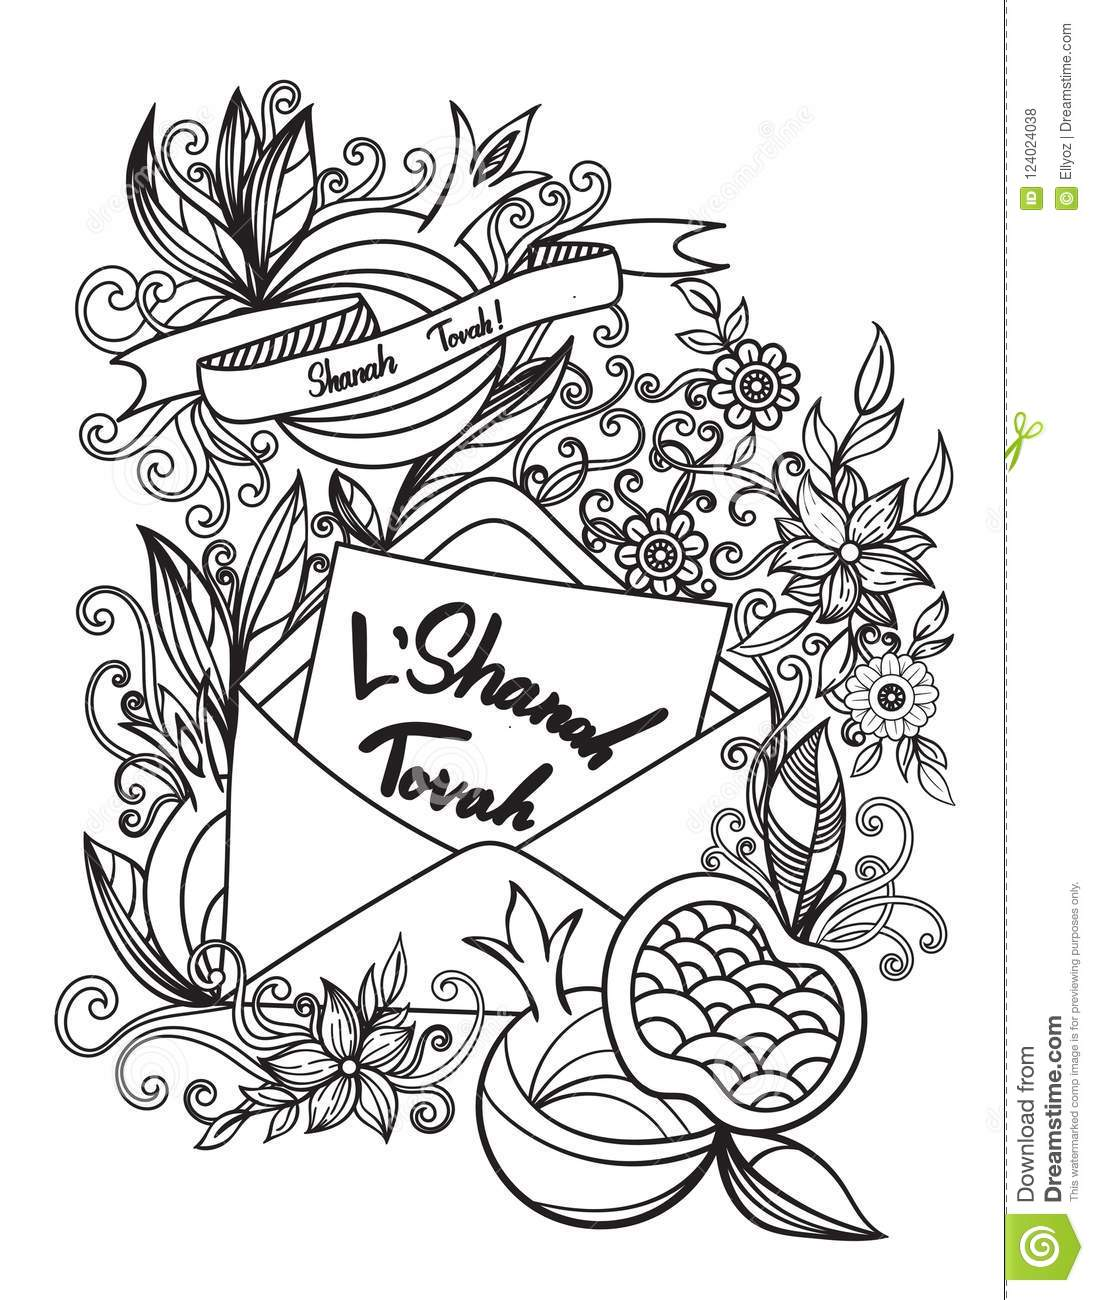 Rosh Hashanah Coloring Page Stock Vector Illustration Of Vector Pomegranate 124024038